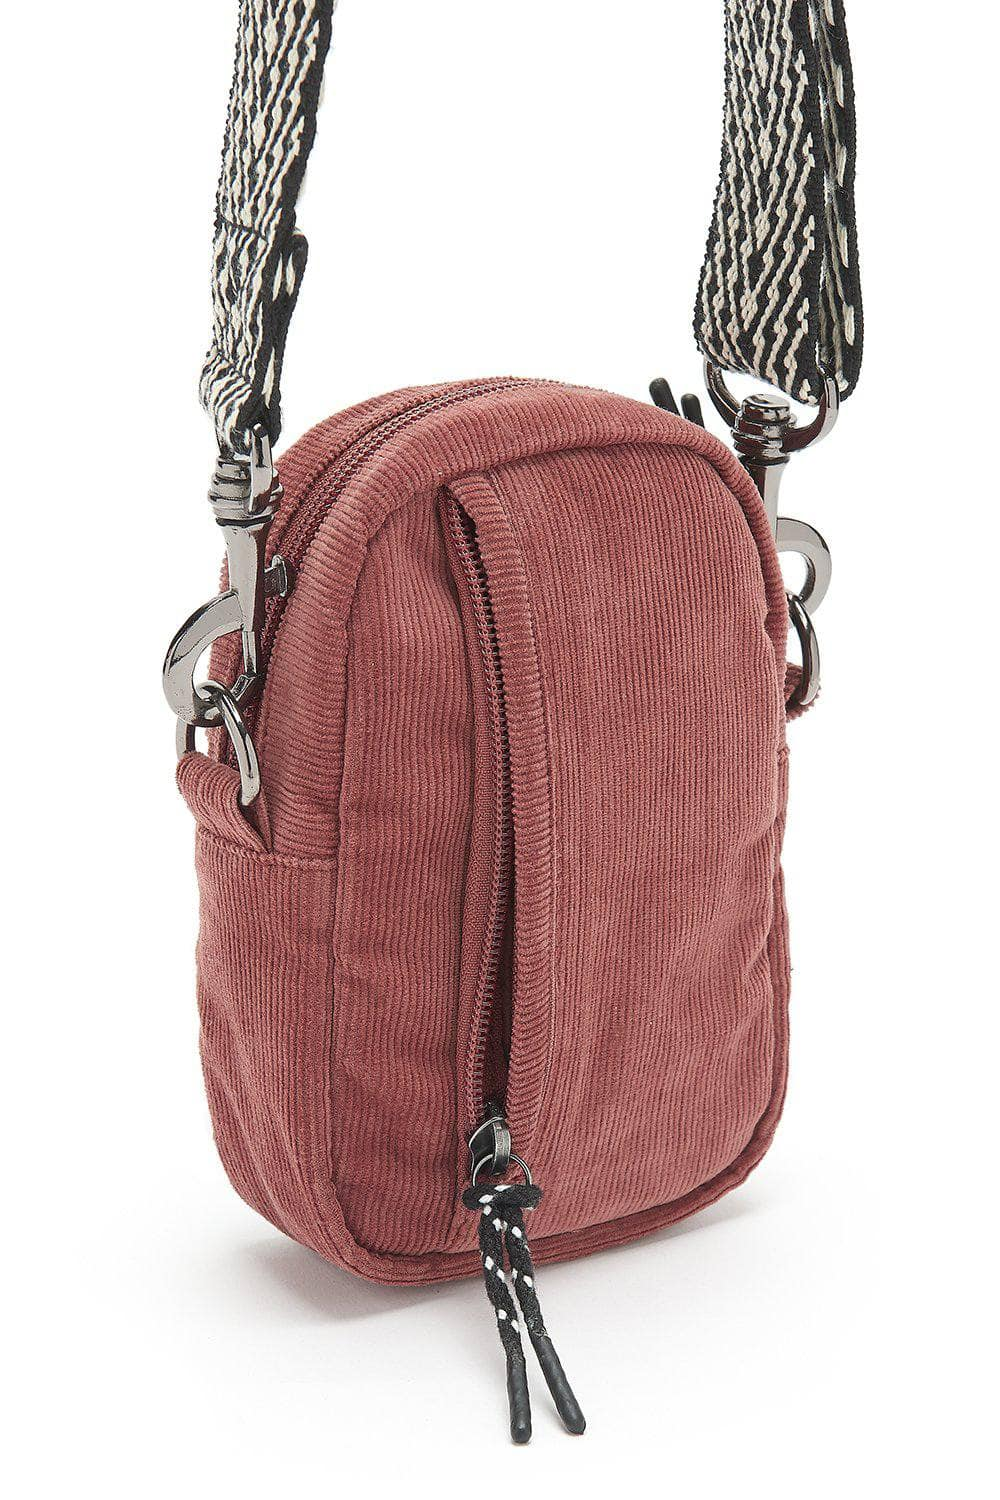 Lucy & Yak Bag 'Brady' Mini Cross Body Bag in Ash Pink